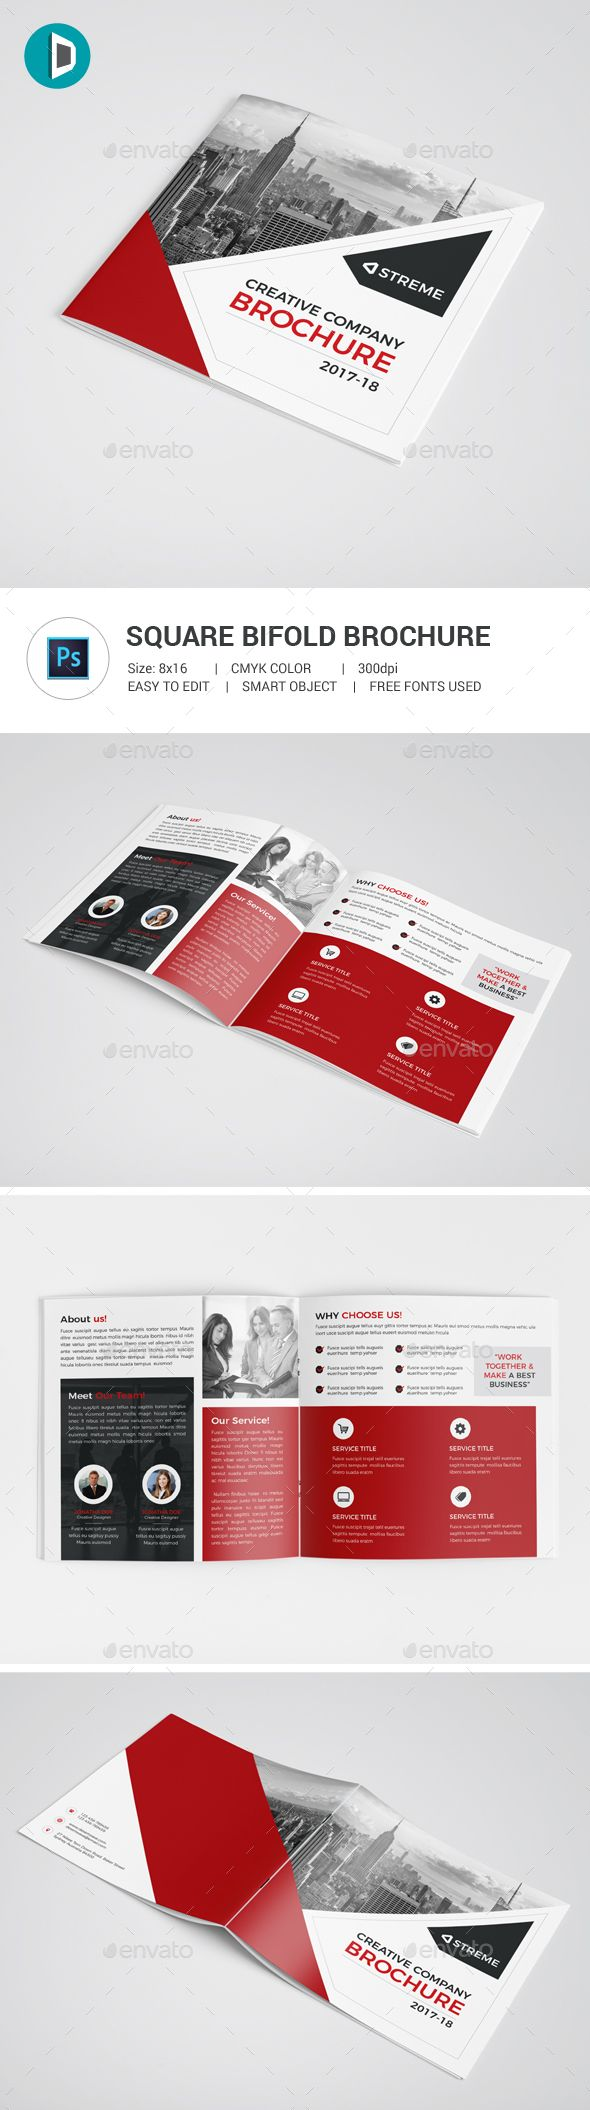 Square Bifold Brochure  Brochure Template Brochures And Template